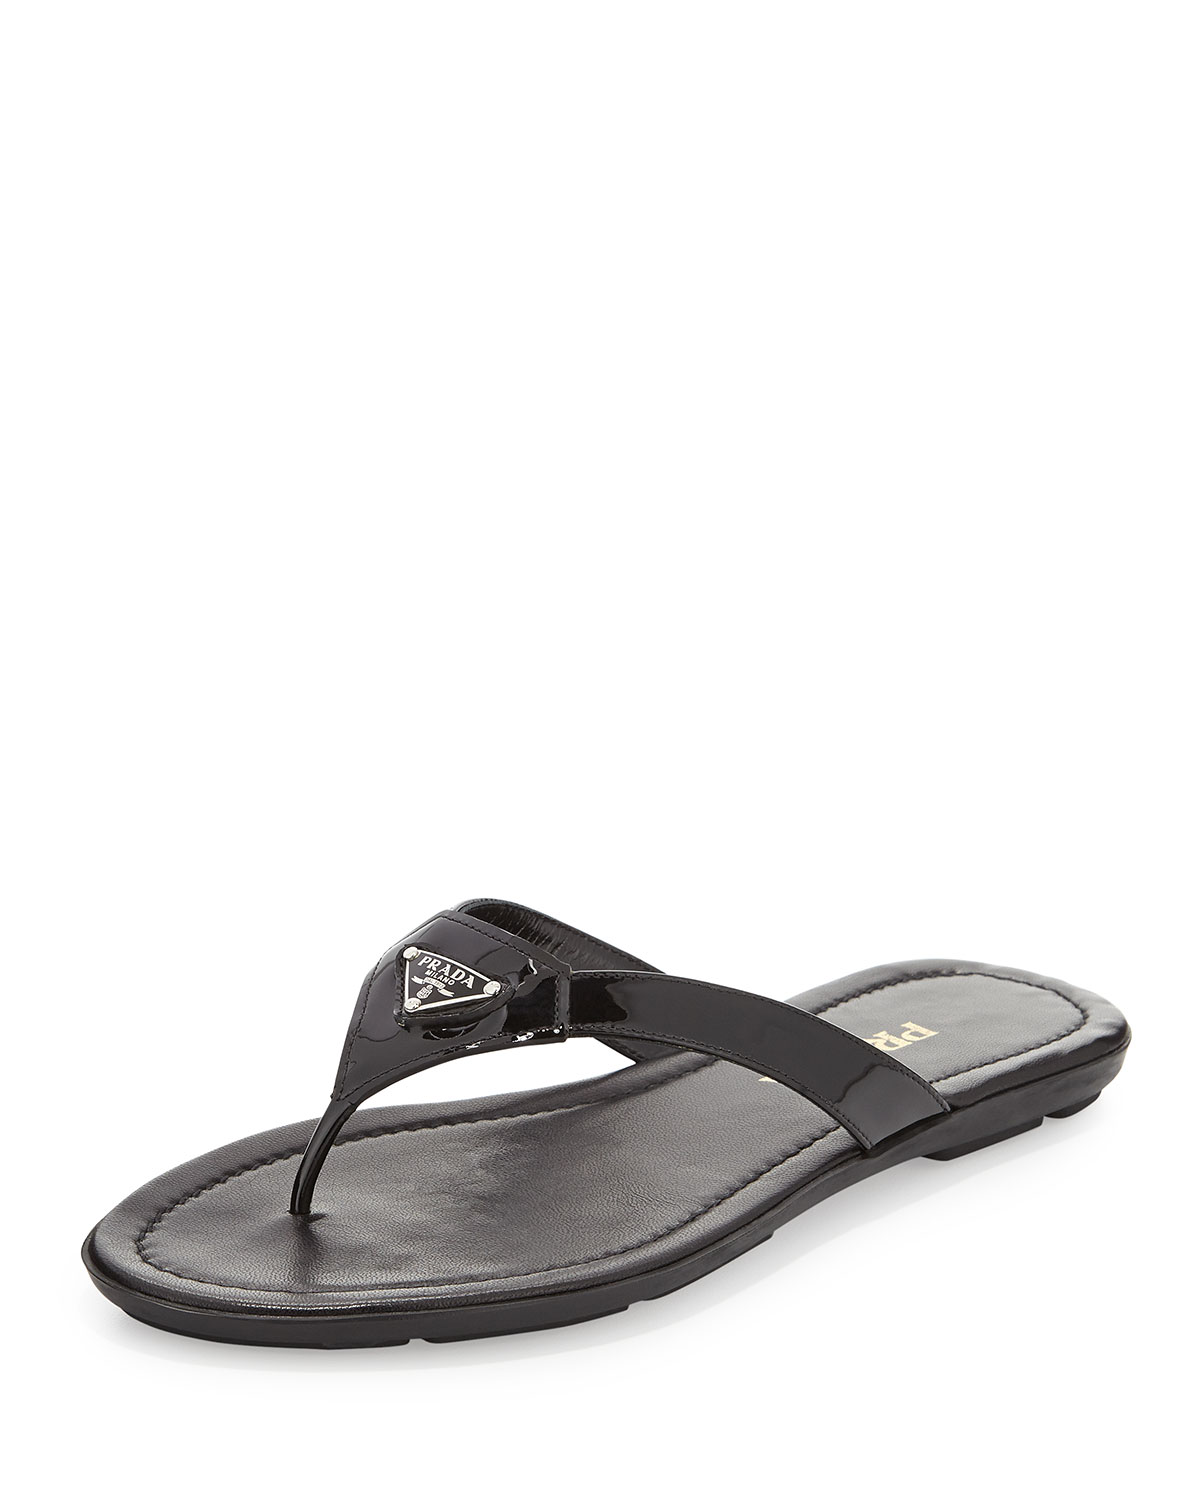 a2def9949 Prada Patent Leather Thong Sandal